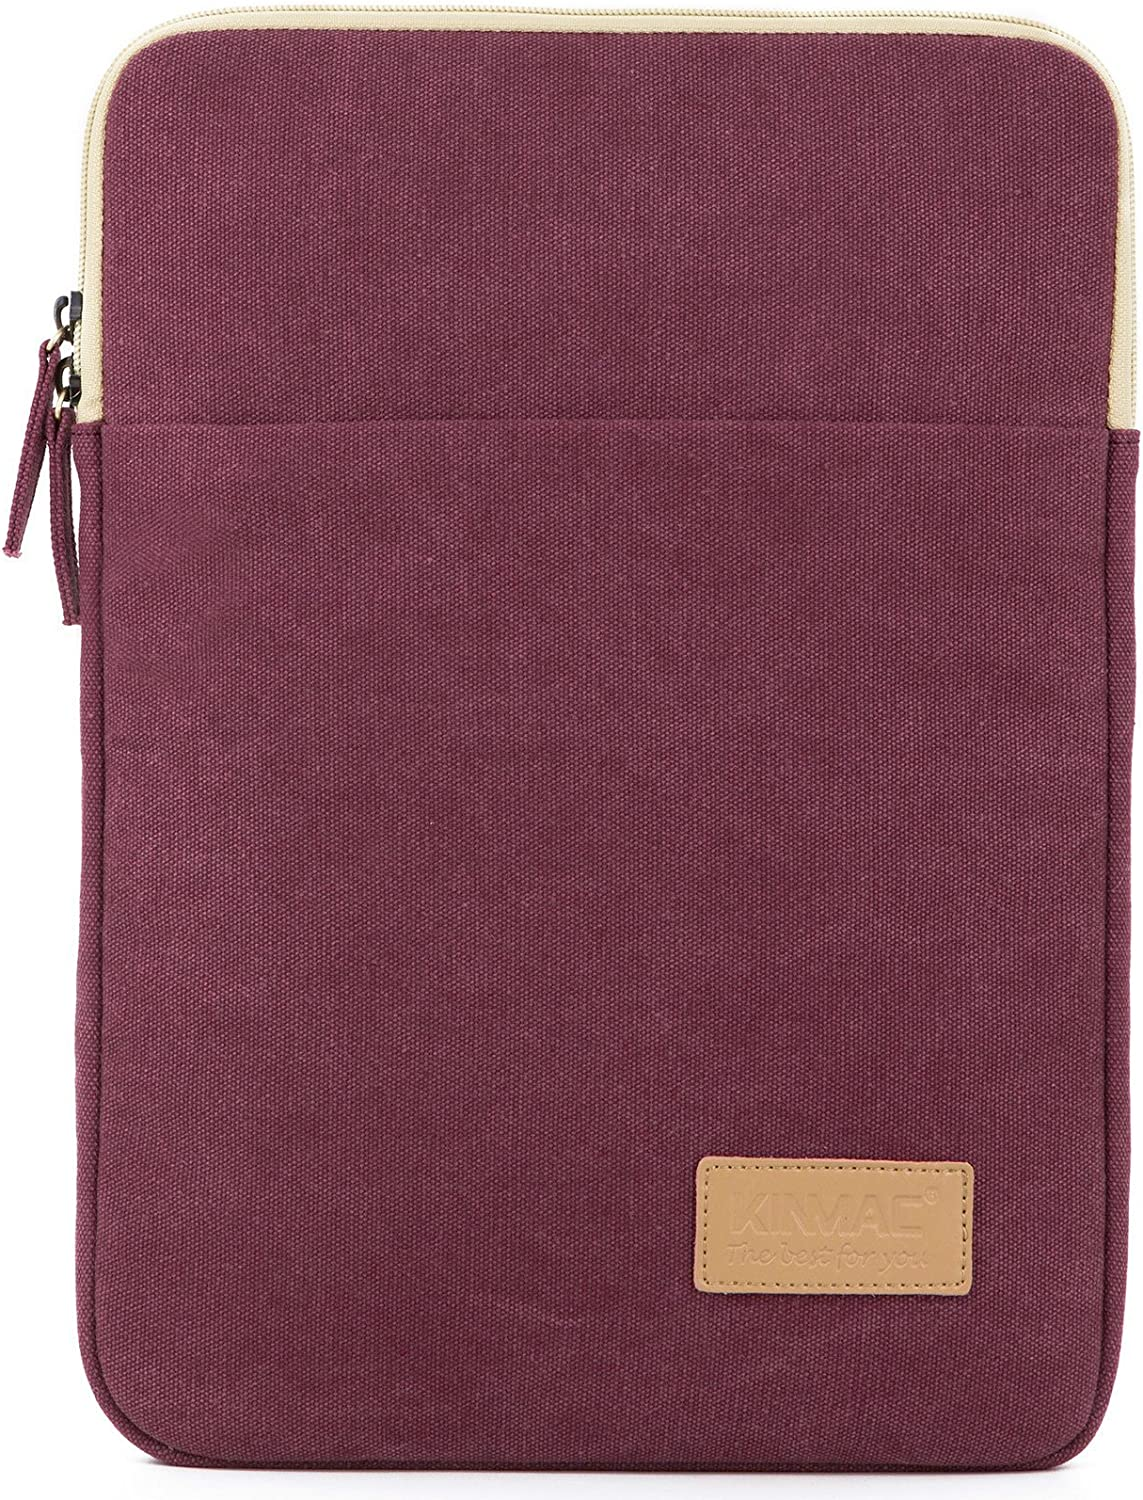 Kinmac Wine Red Water Resistant Canvas Vertical Style 15 inch Laptop Sleeve with Pocket for 15 inch to 15.6 inch Laptop